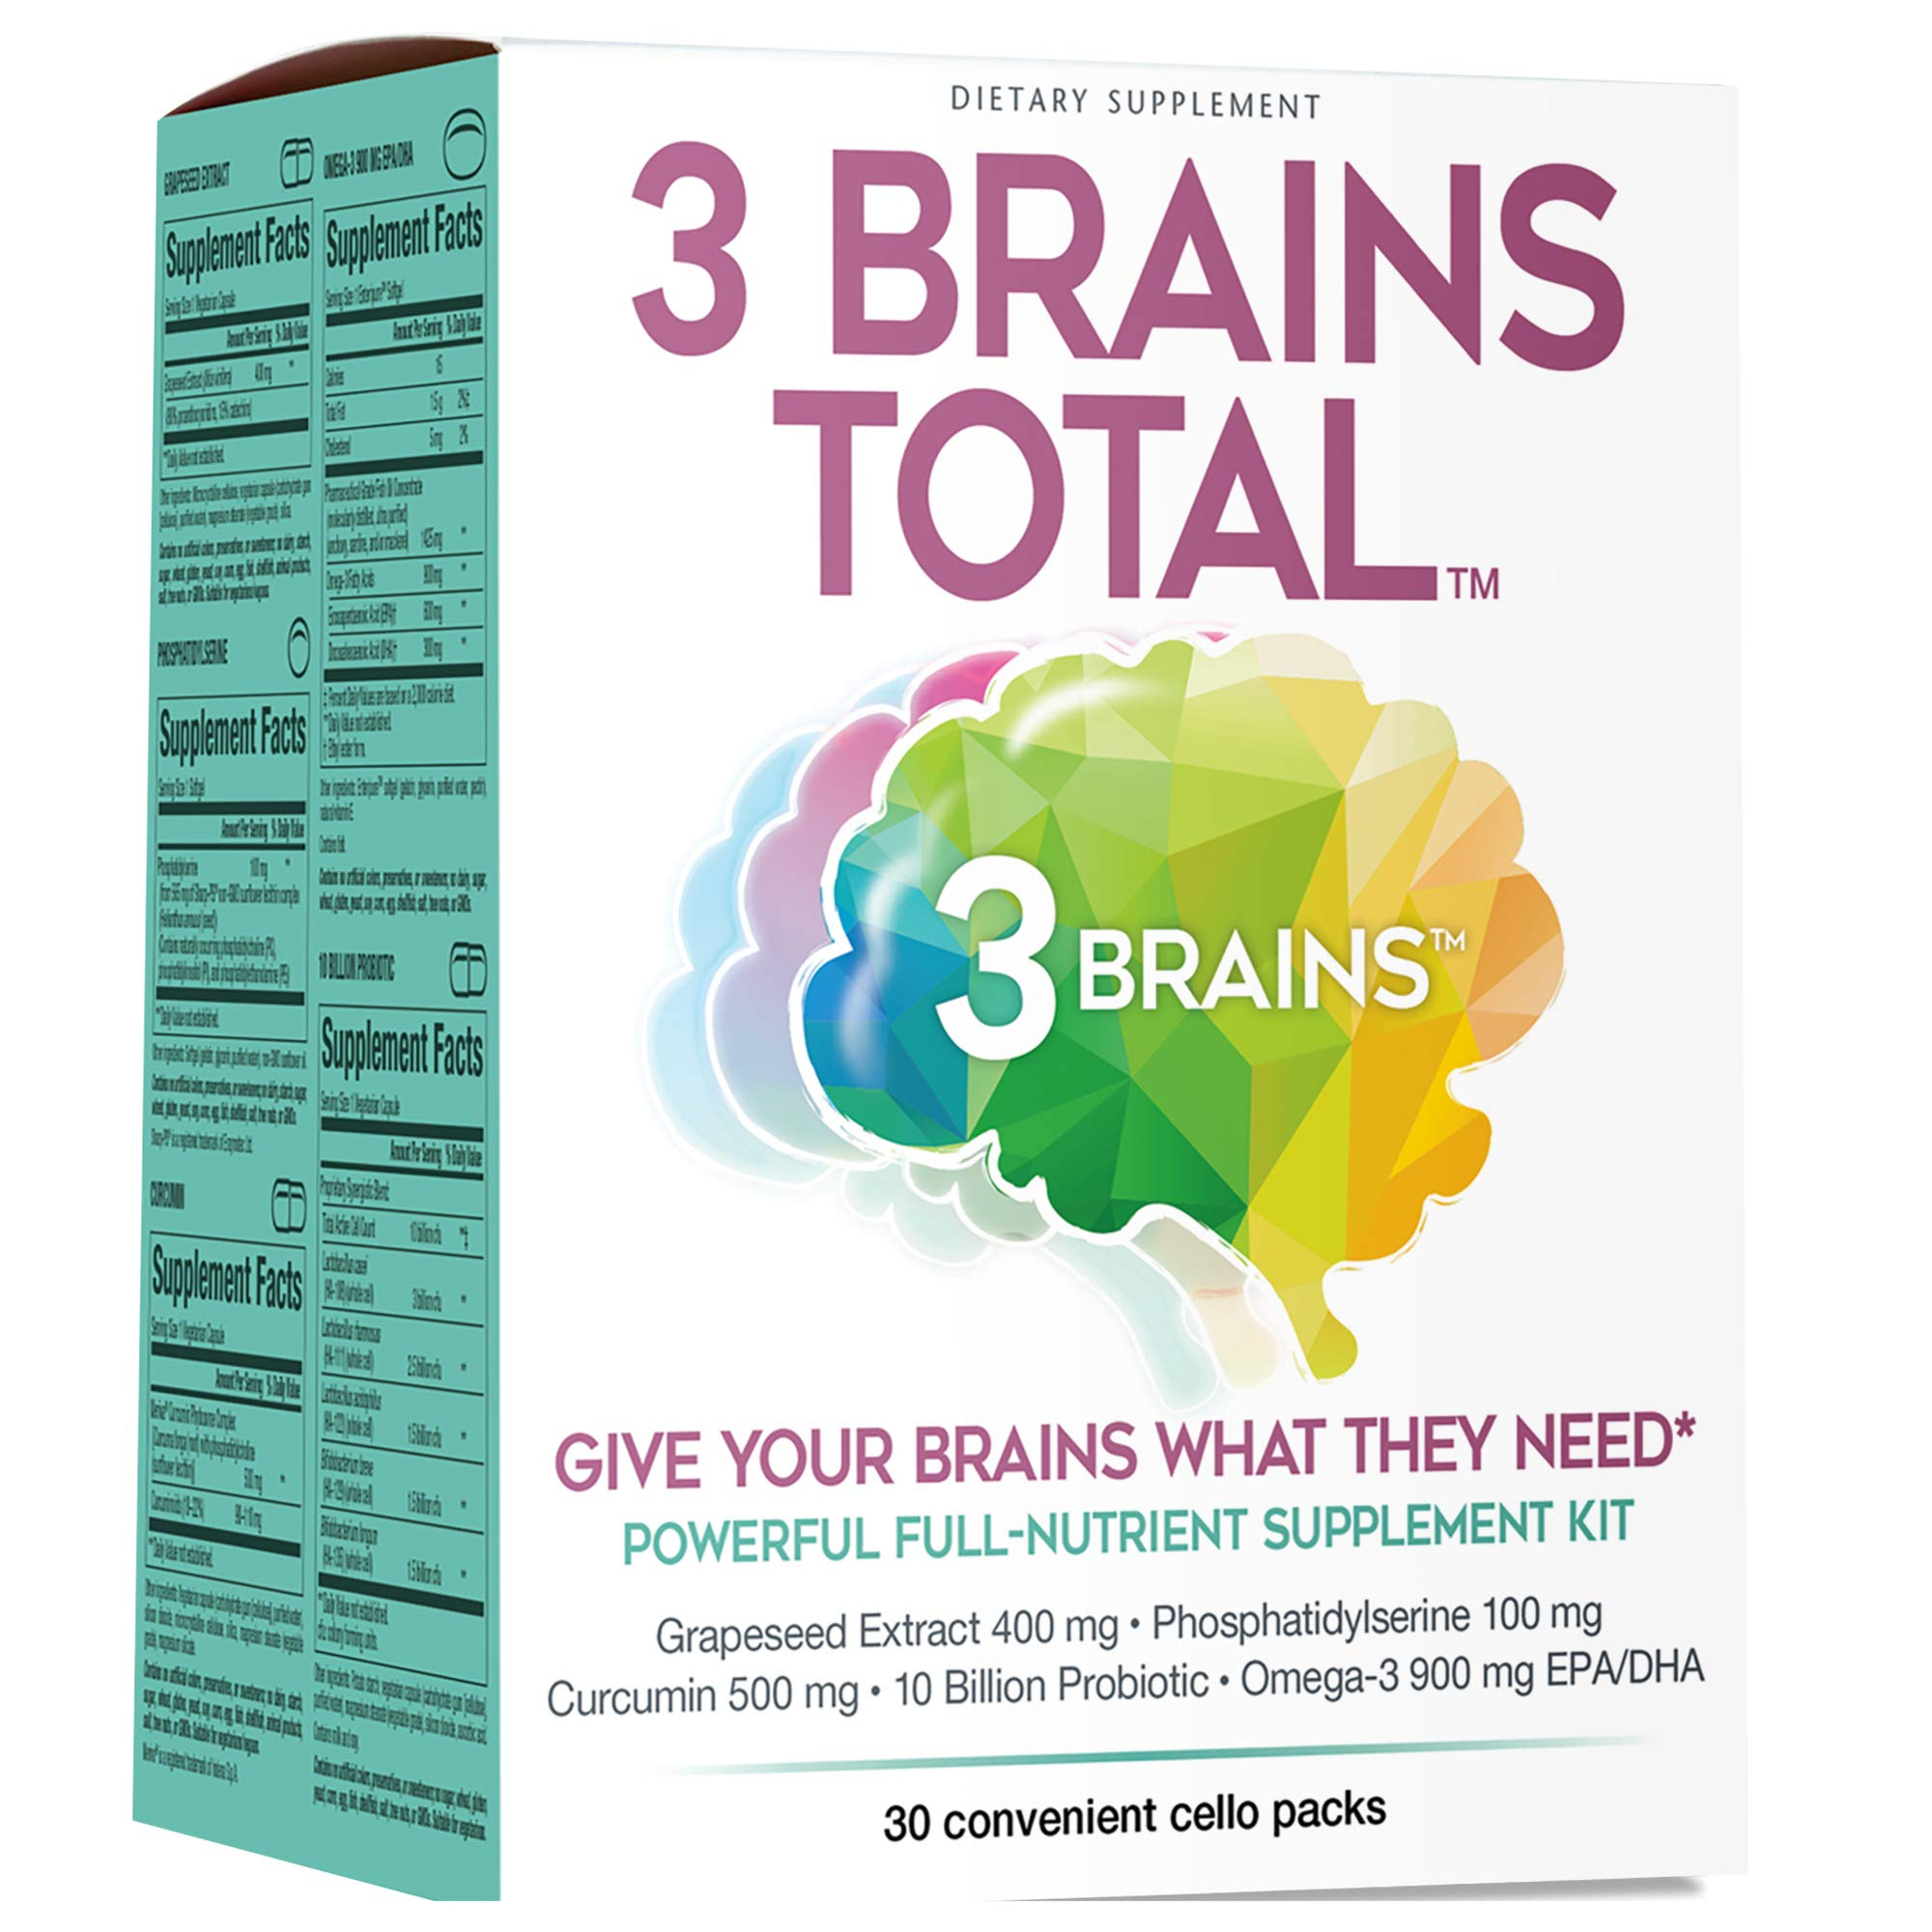 3 Brains by Natural Factors, 3 Brains Total Kit, Promotes Brain Health and Well-Being, Daily Dietary Supplement, 30 Single-Serve Packs (30 Servings) by Natural Factors